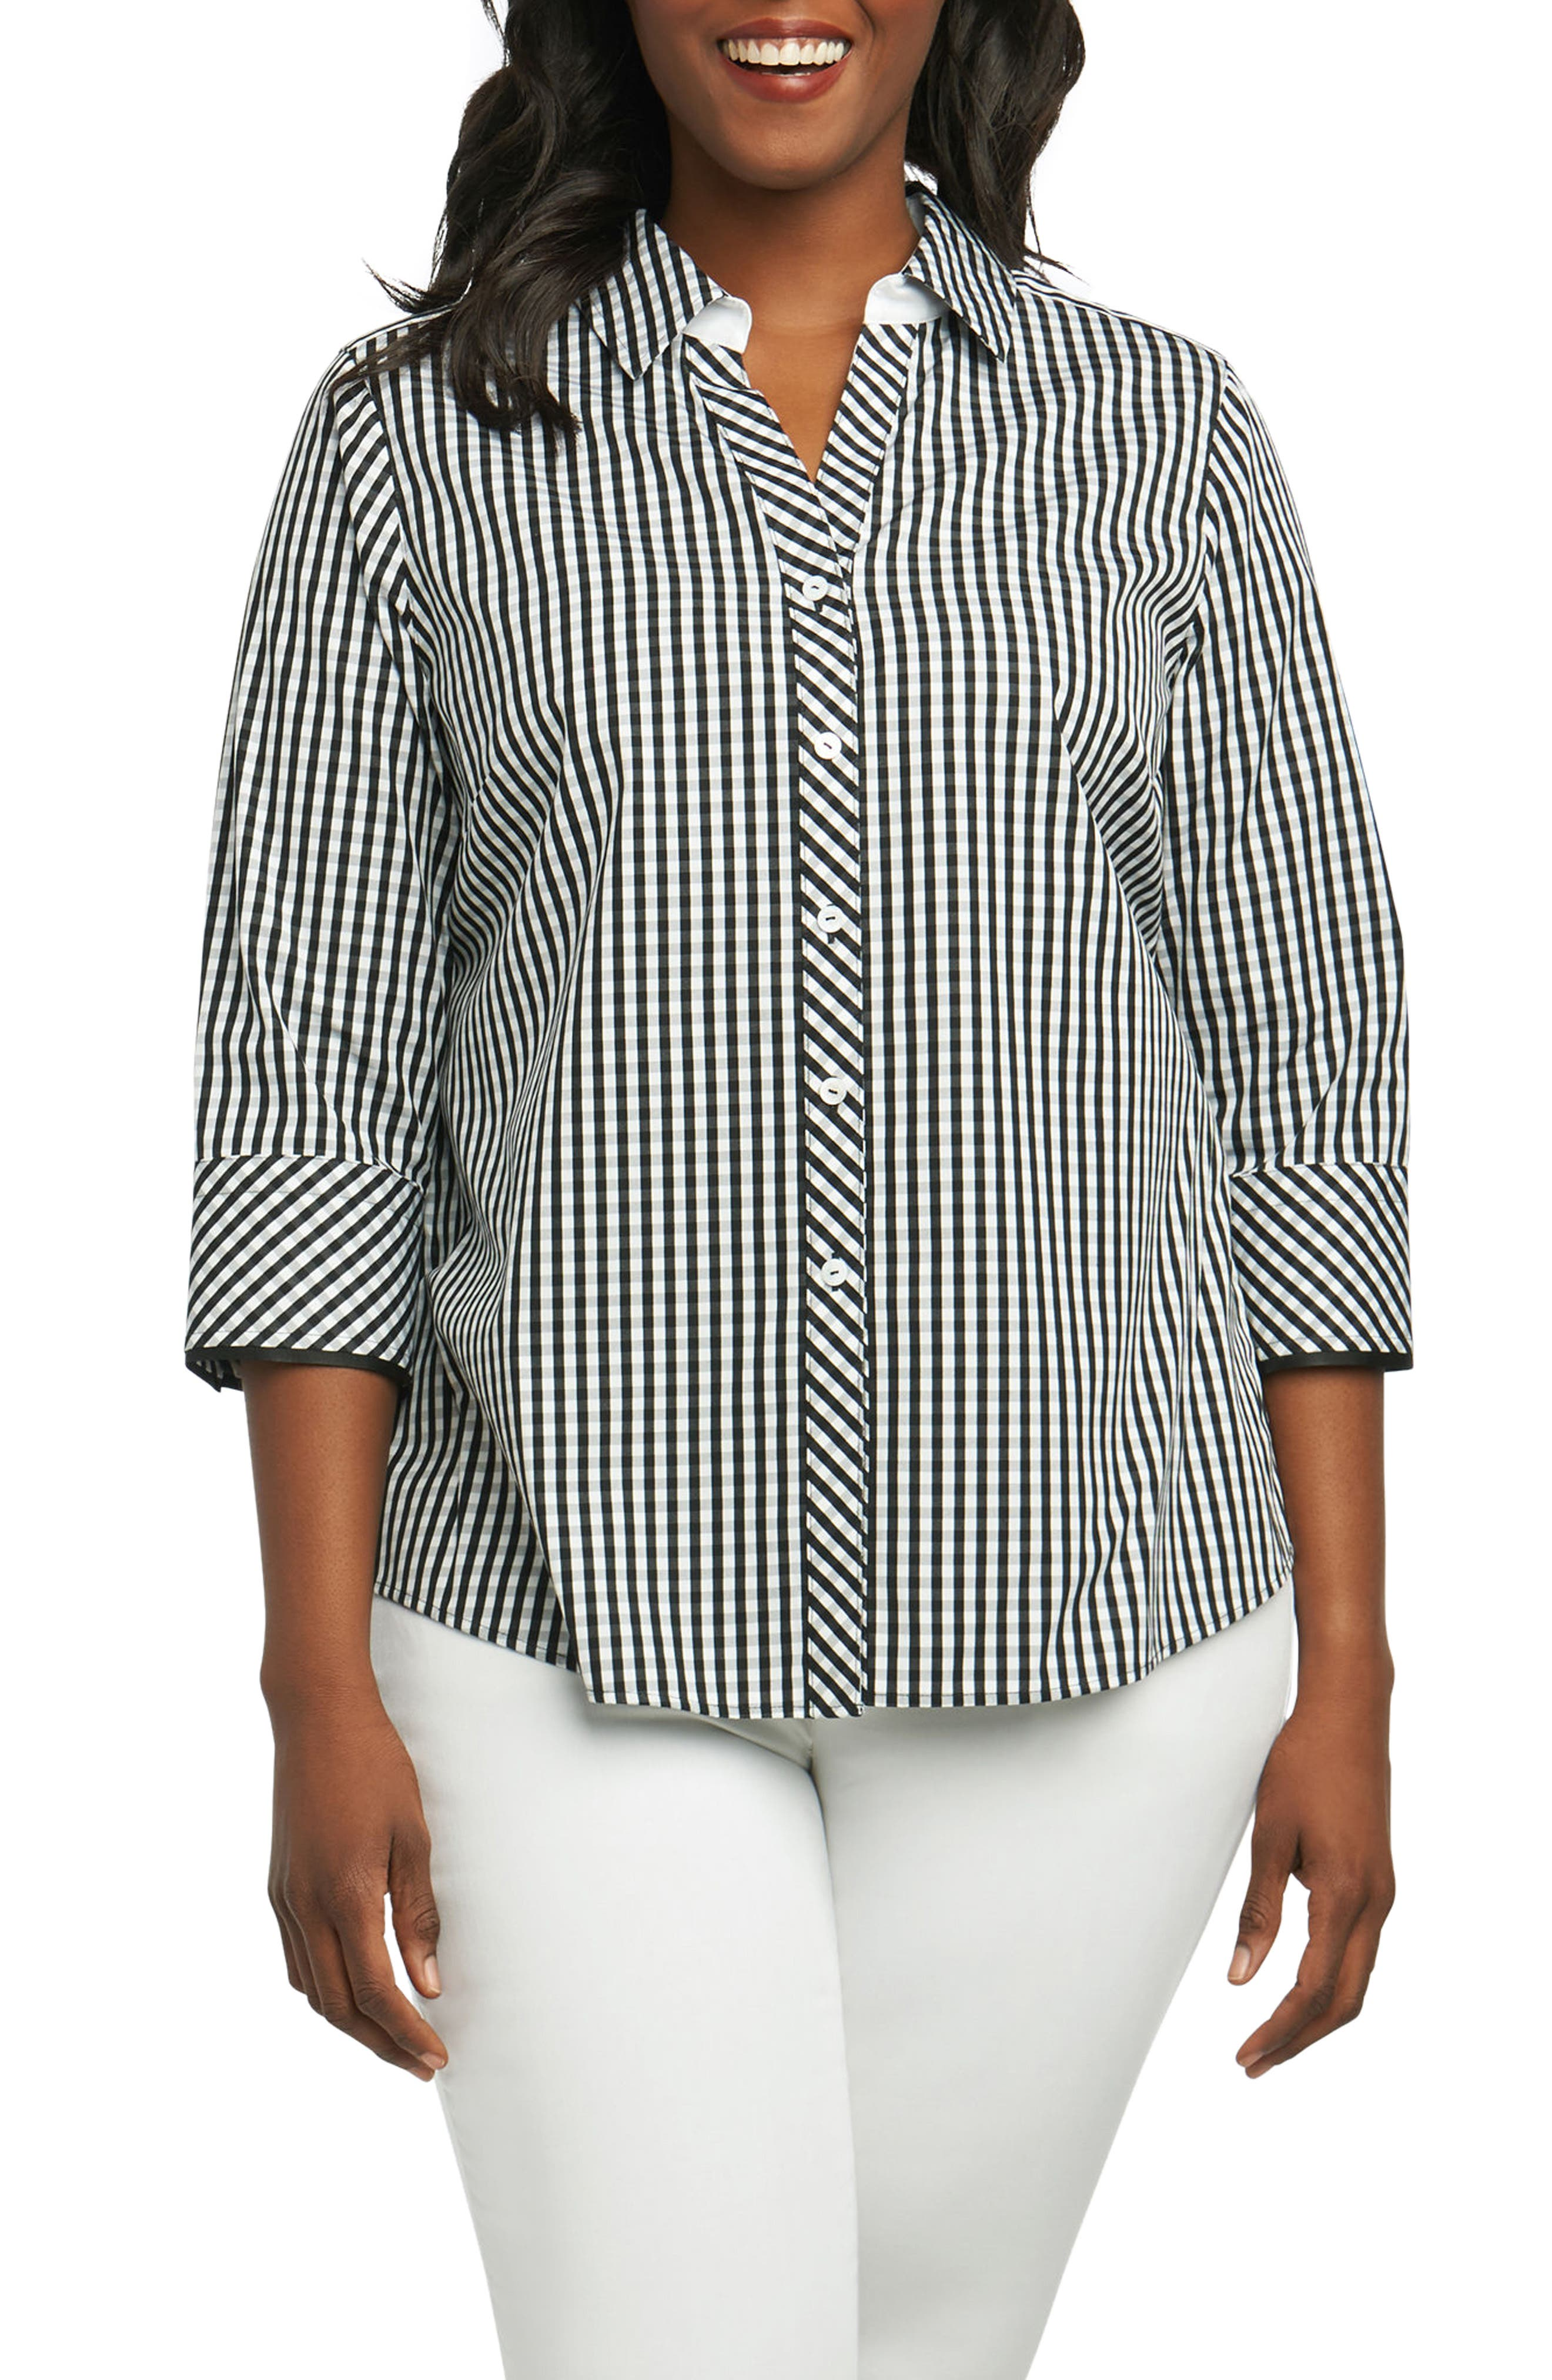 Mary Gingham Wrinkle Free Shirt,                             Main thumbnail 1, color,                             002